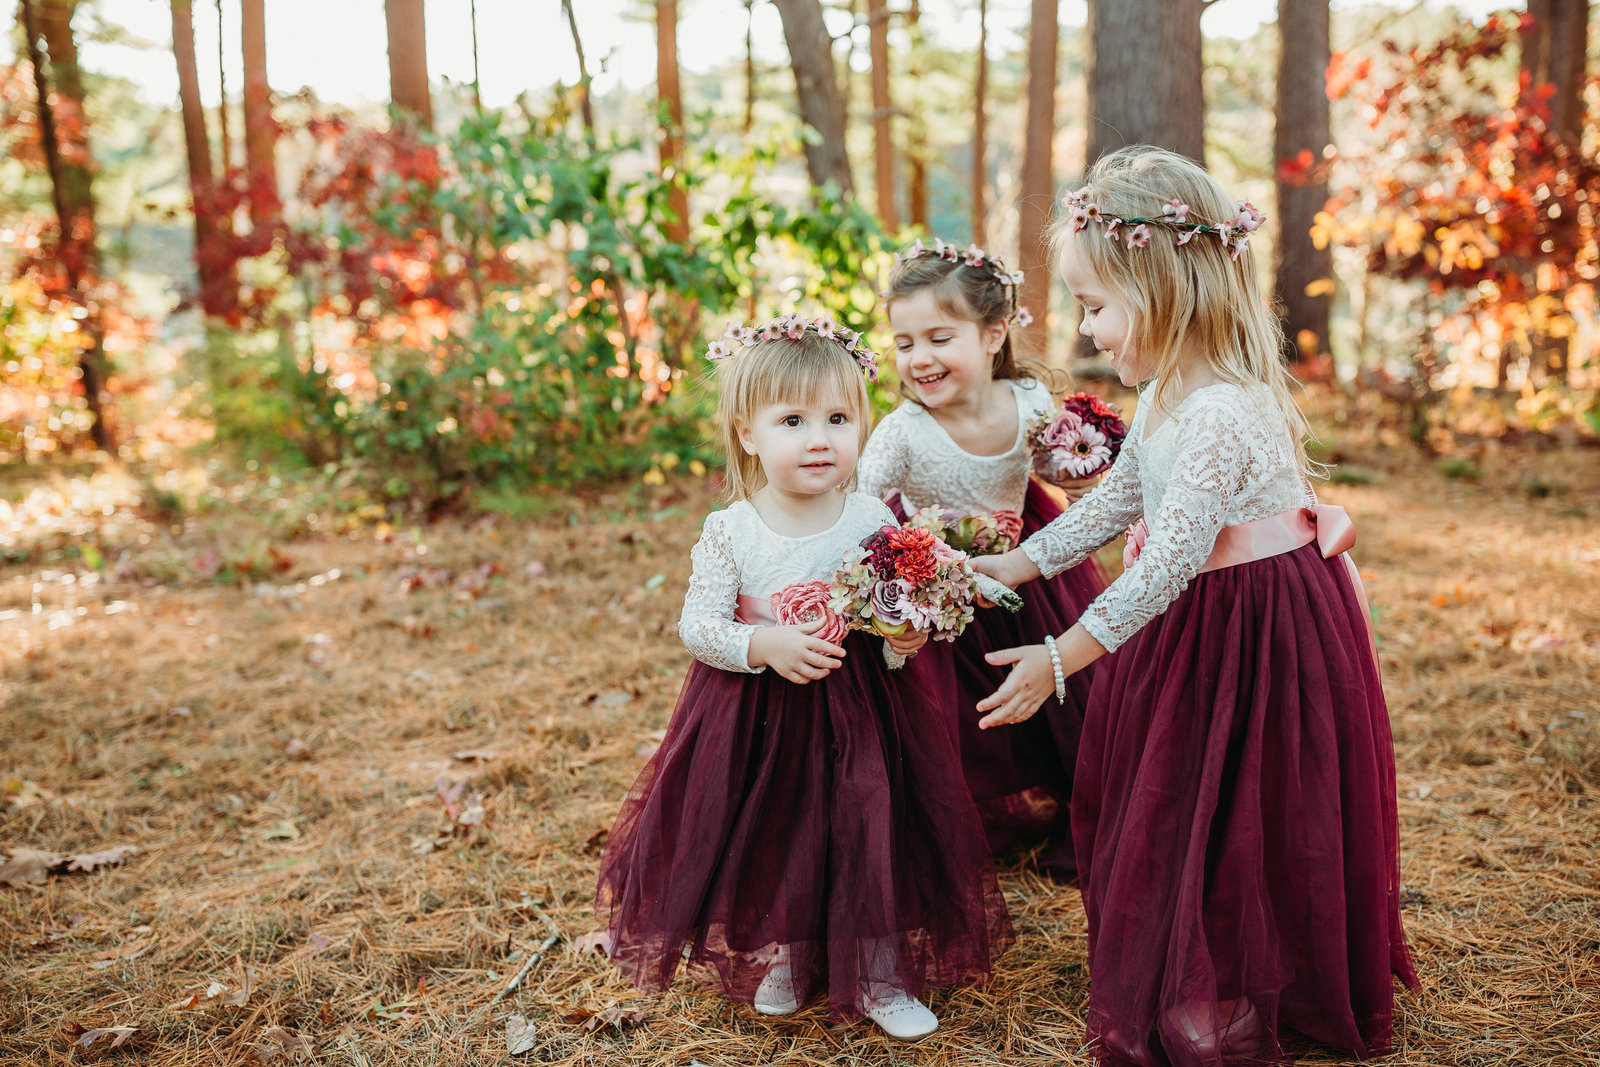 flower girls chase one another during burgundy autumn wedding in mass